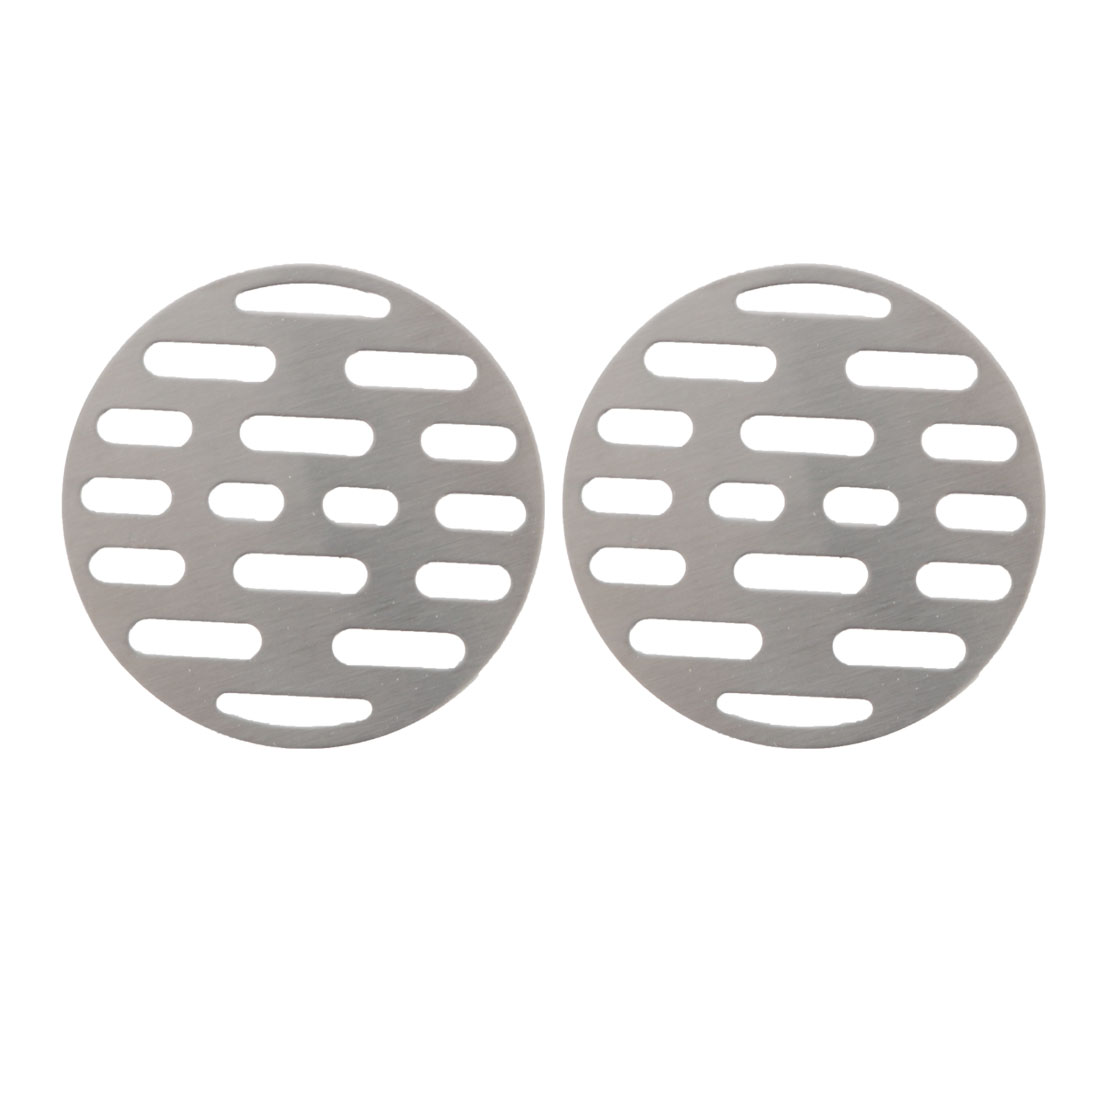 "2pcs 2.6"" Floor Drain Cover Hair Catcher Sink Filter Stopper Bathroom Kitchen"